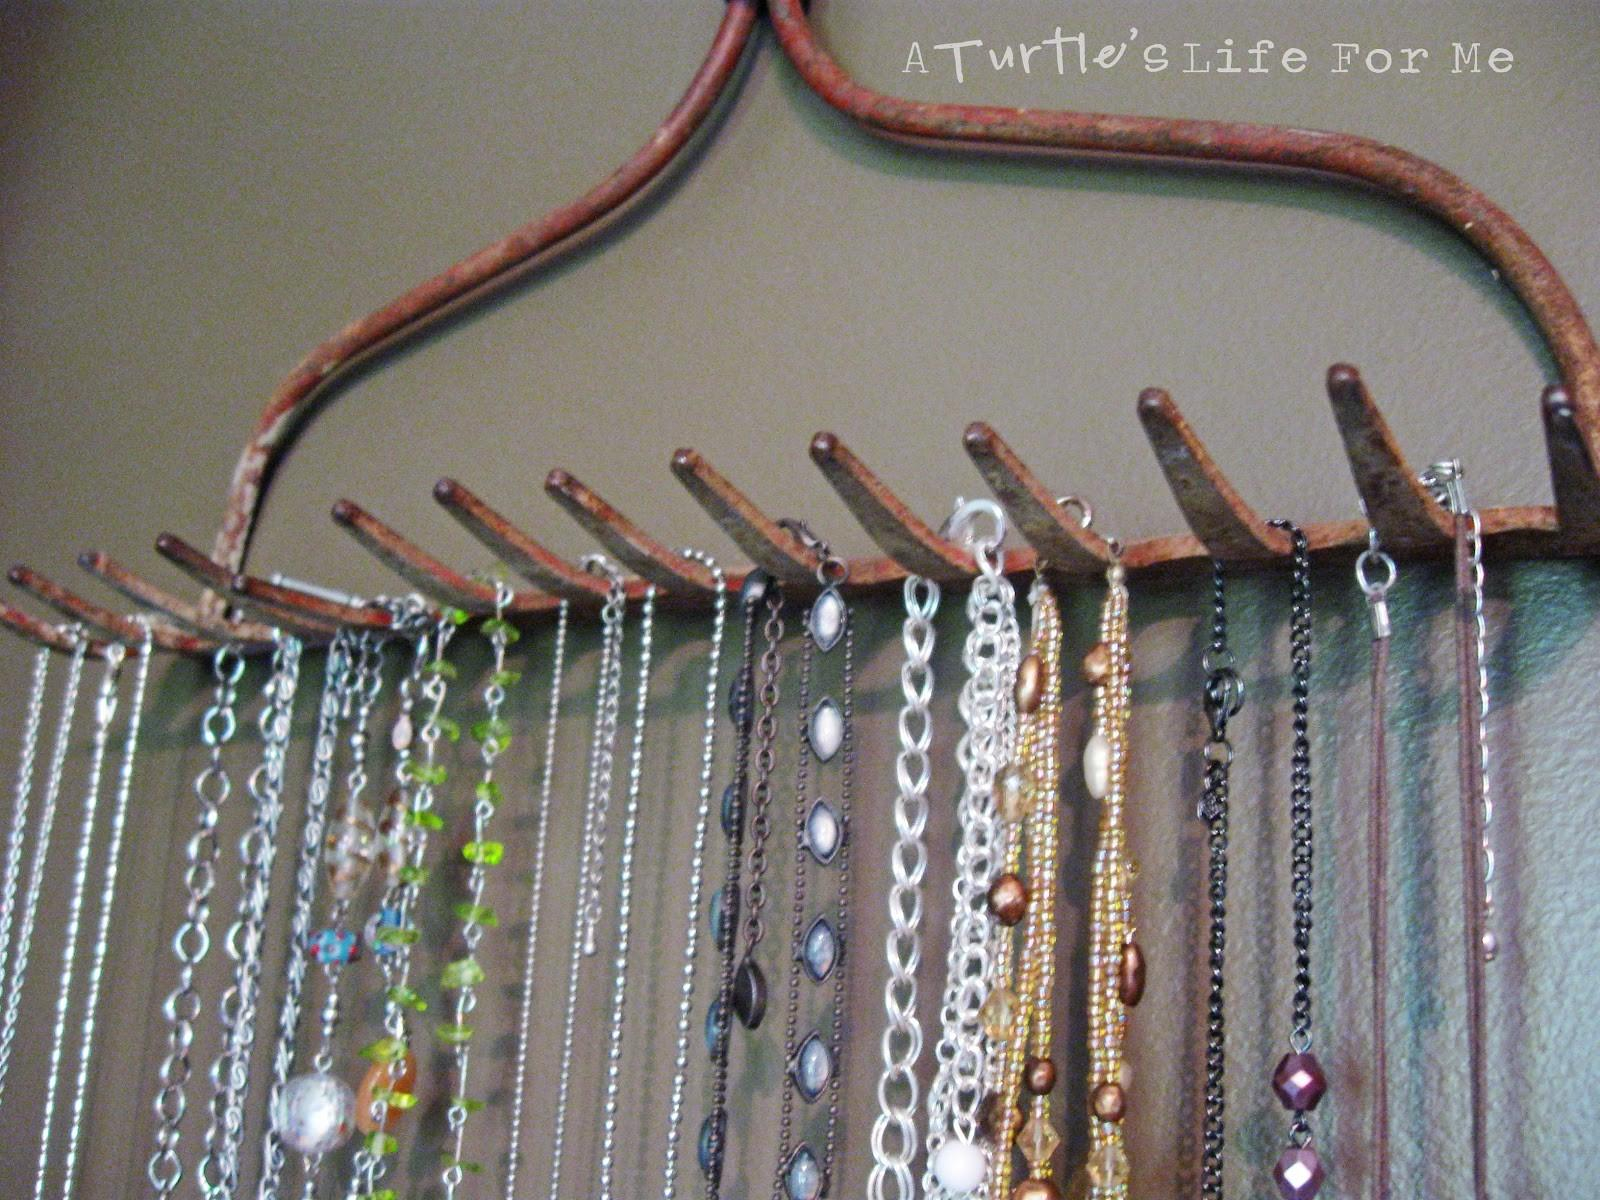 Farm Tool Necklace Hanger Turtle Life